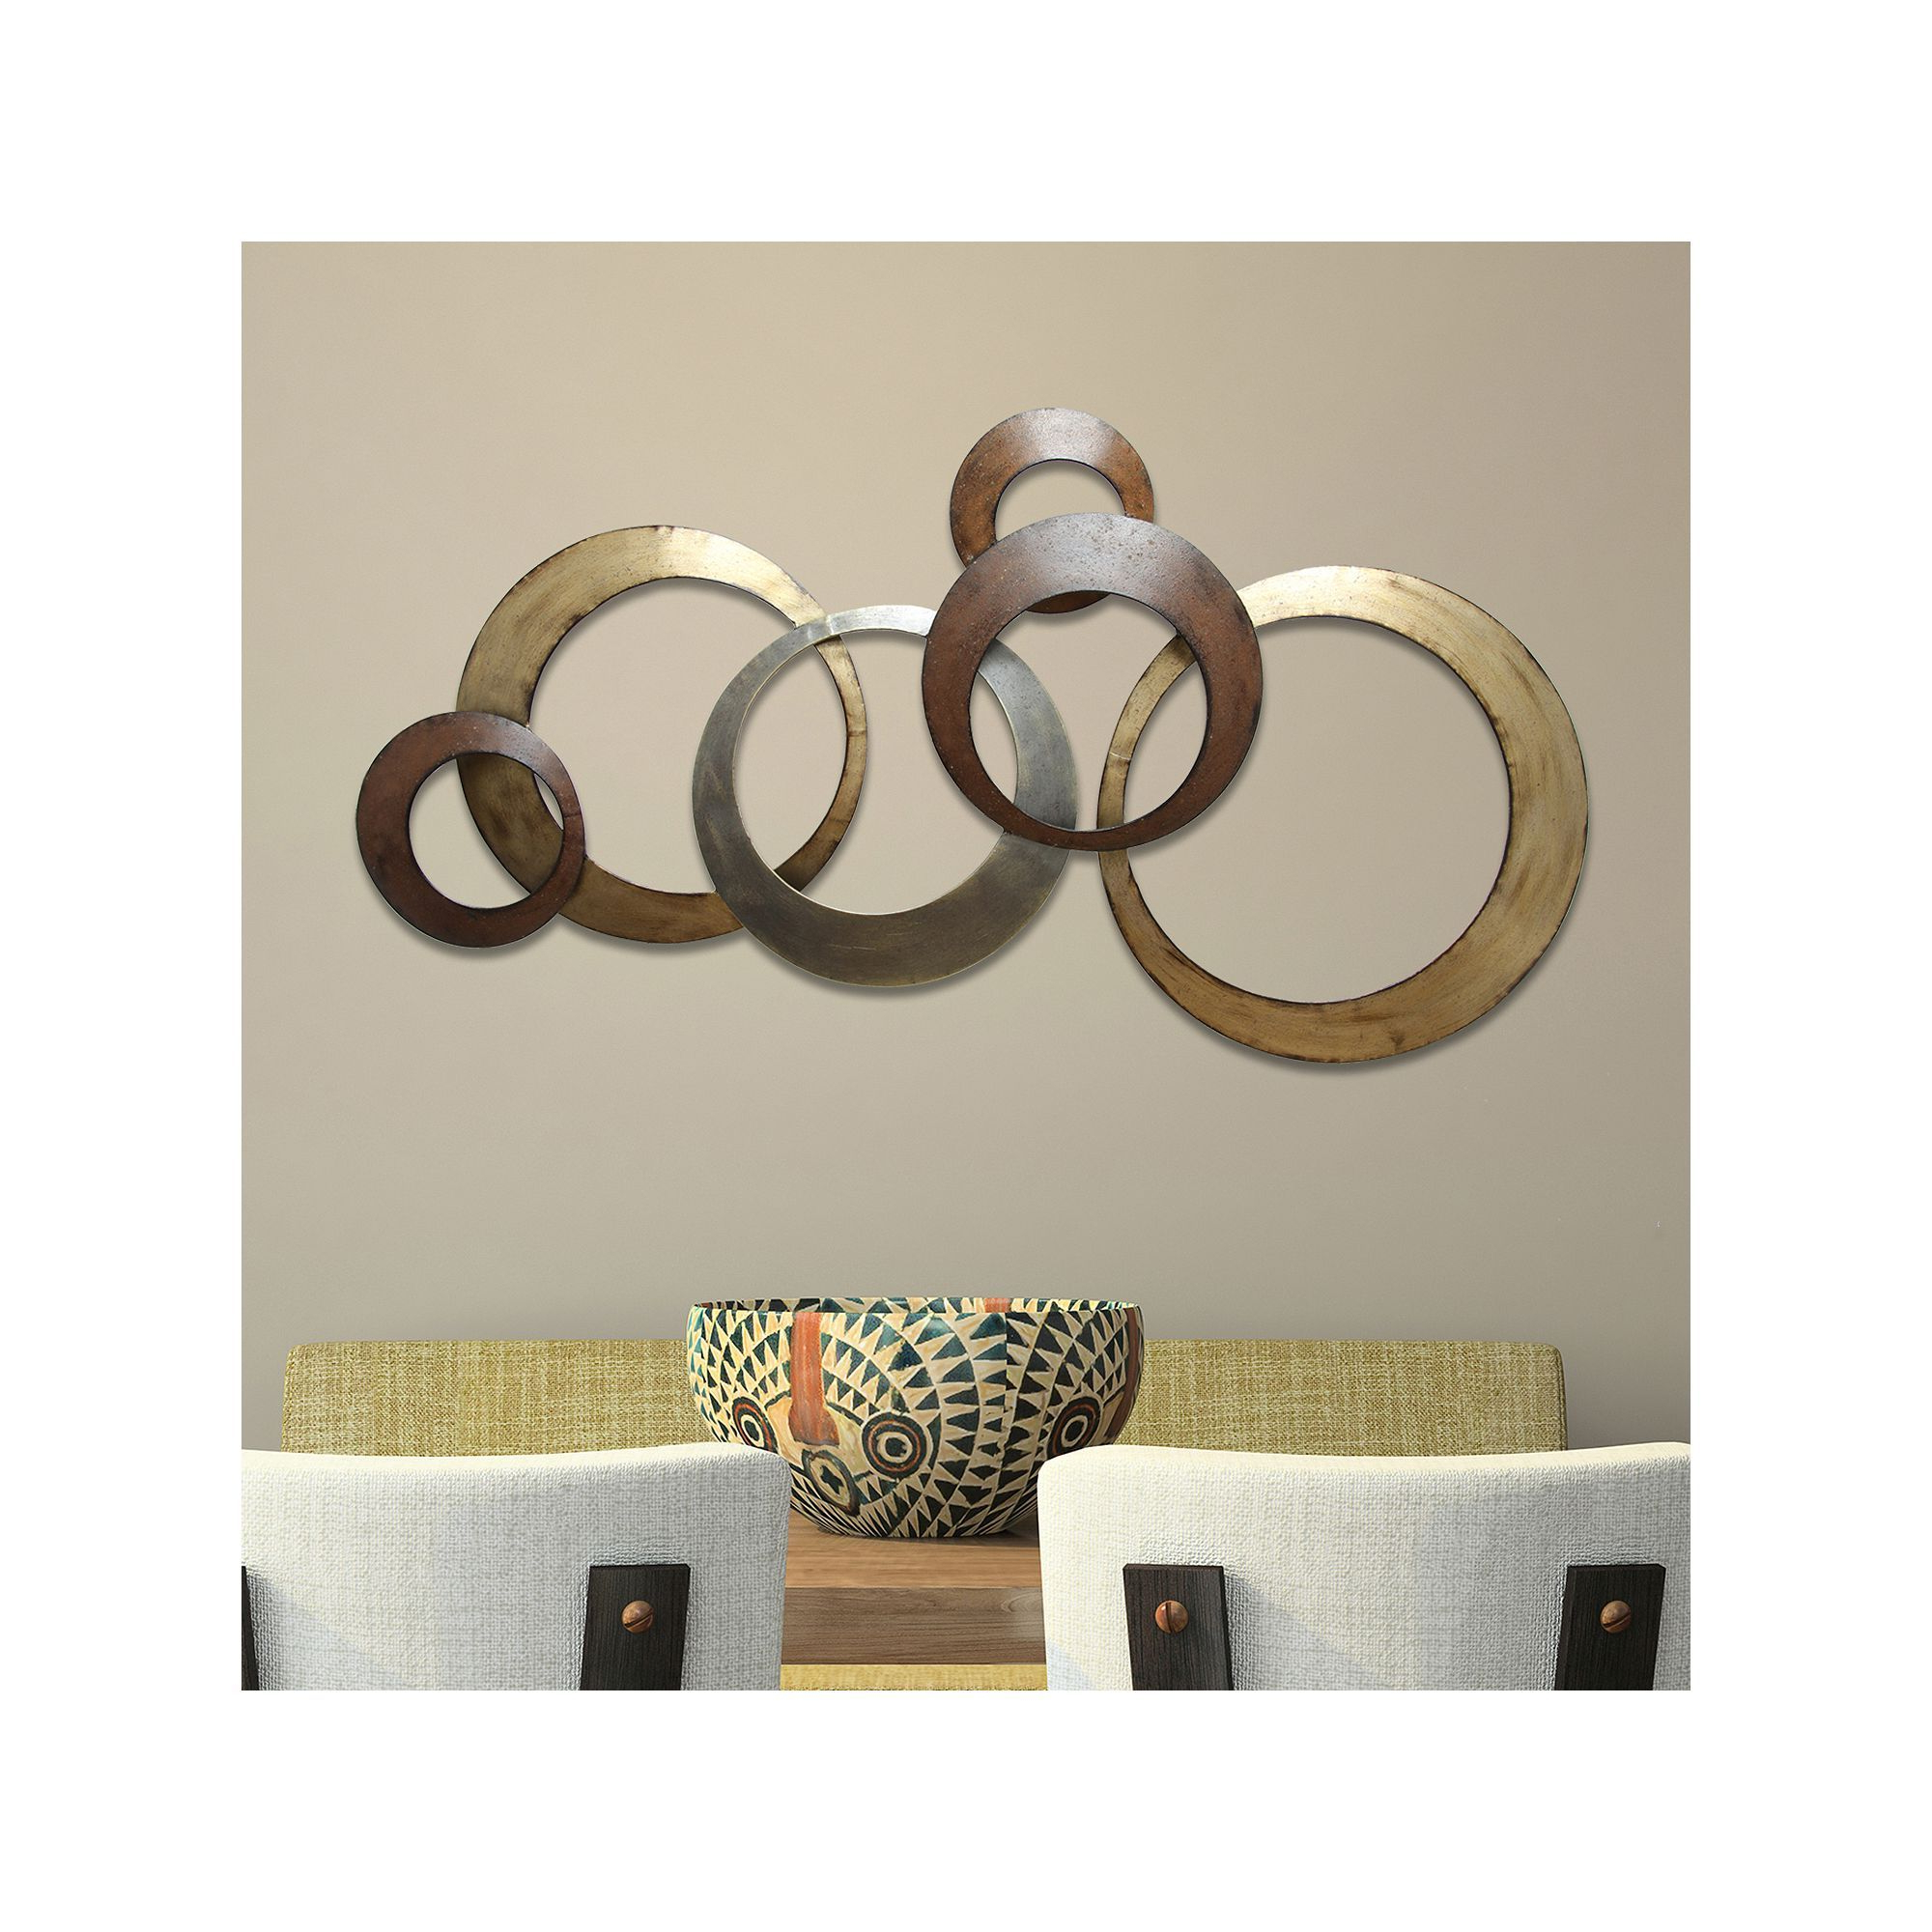 Current Rings Wall Décor By Stratton Home Decor Regarding Stratton Home Decor Metallic Rings Wall Decor In (View 5 of 20)